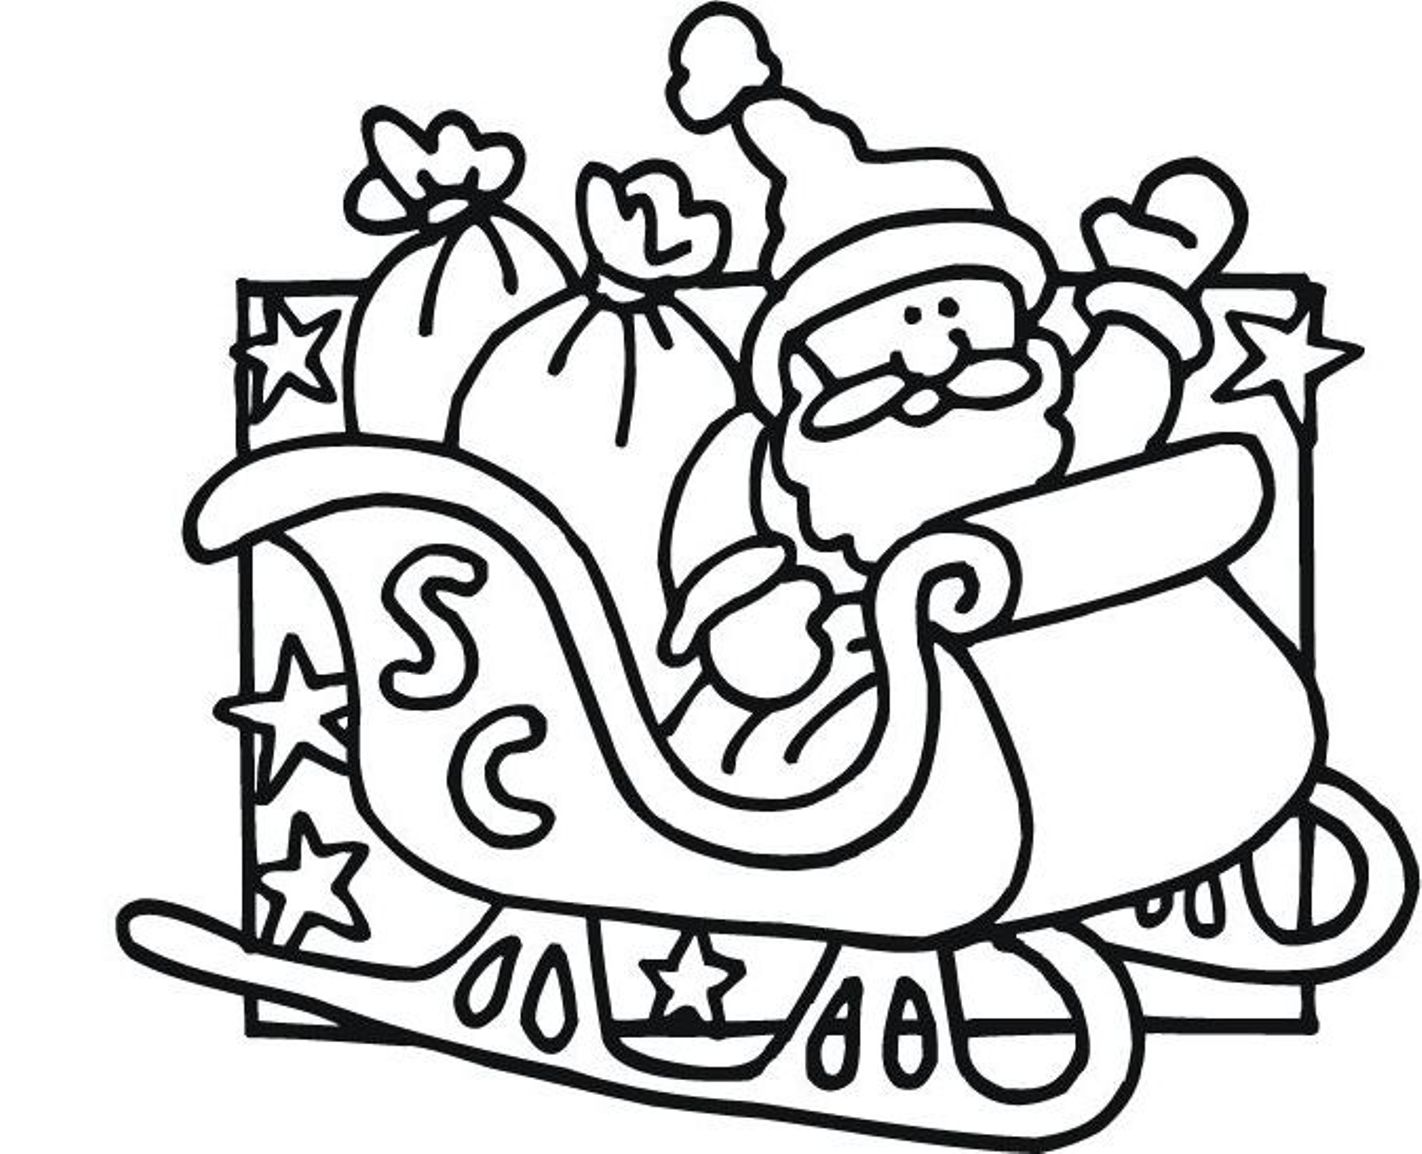 403 forbidden for Santa coloring pages free